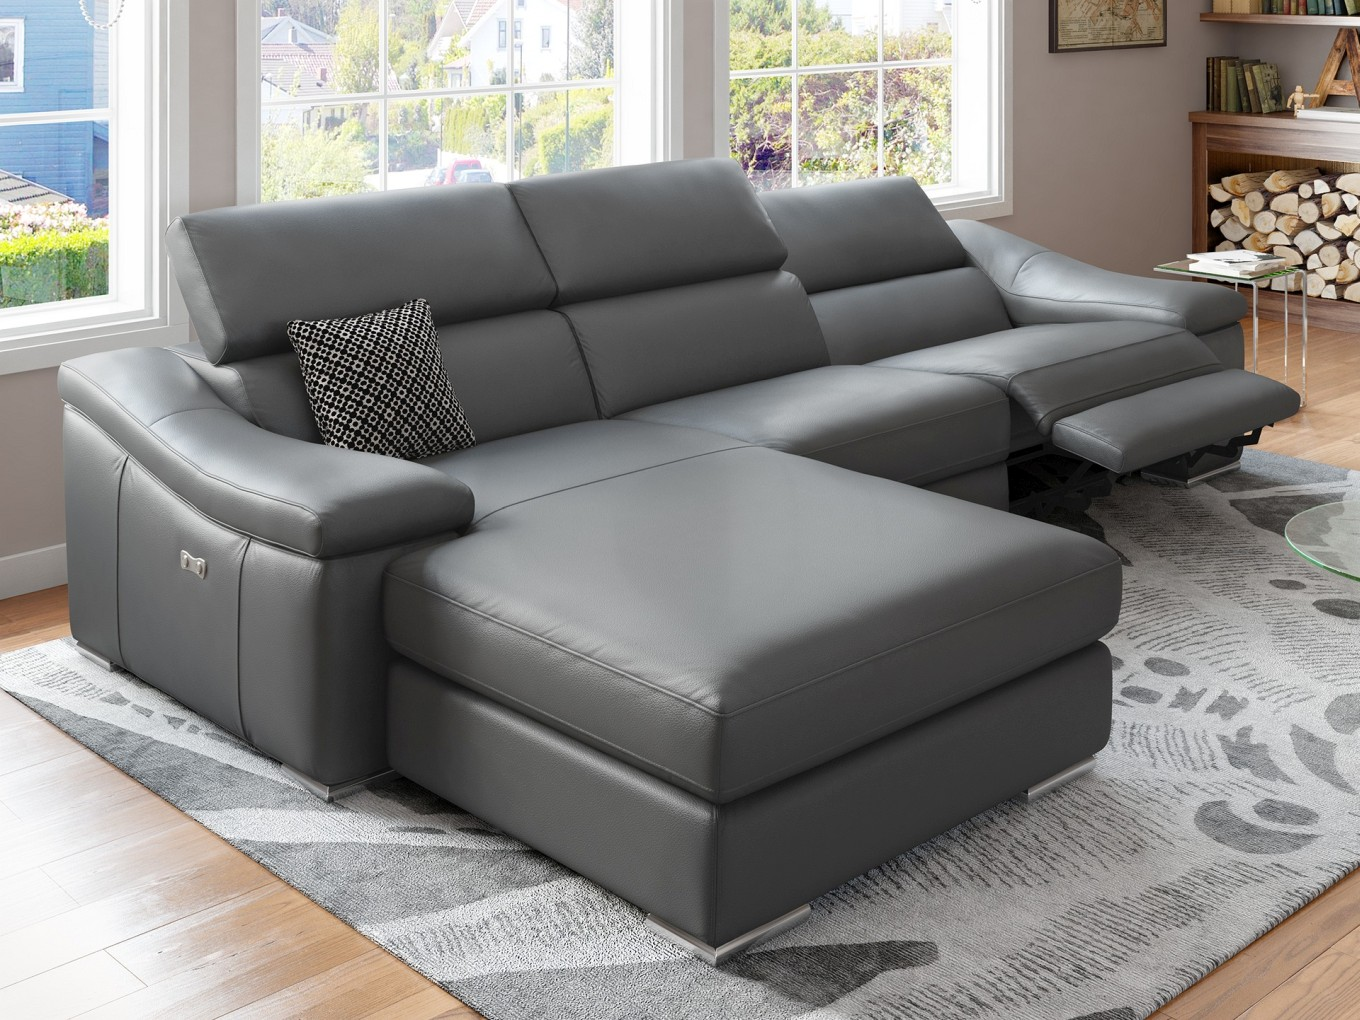 leder couch ecksofa garnitur kino tv funktions sofa relax funktion polsterecke ebay. Black Bedroom Furniture Sets. Home Design Ideas